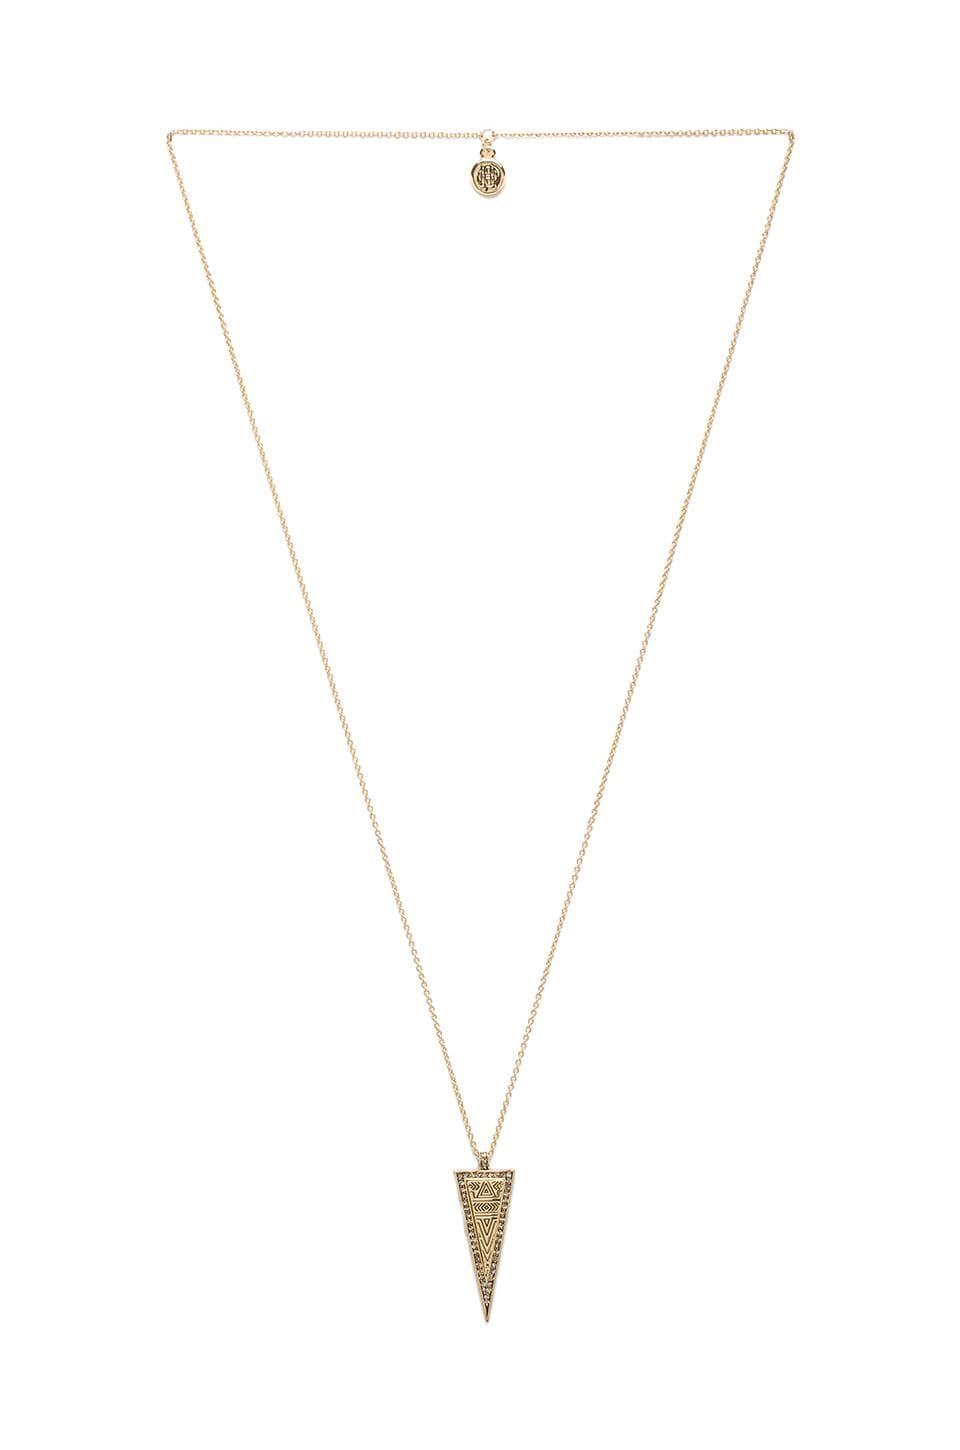 House of Harlow 1960 House of Harlow Sparkling Periphery Necklace in Gold